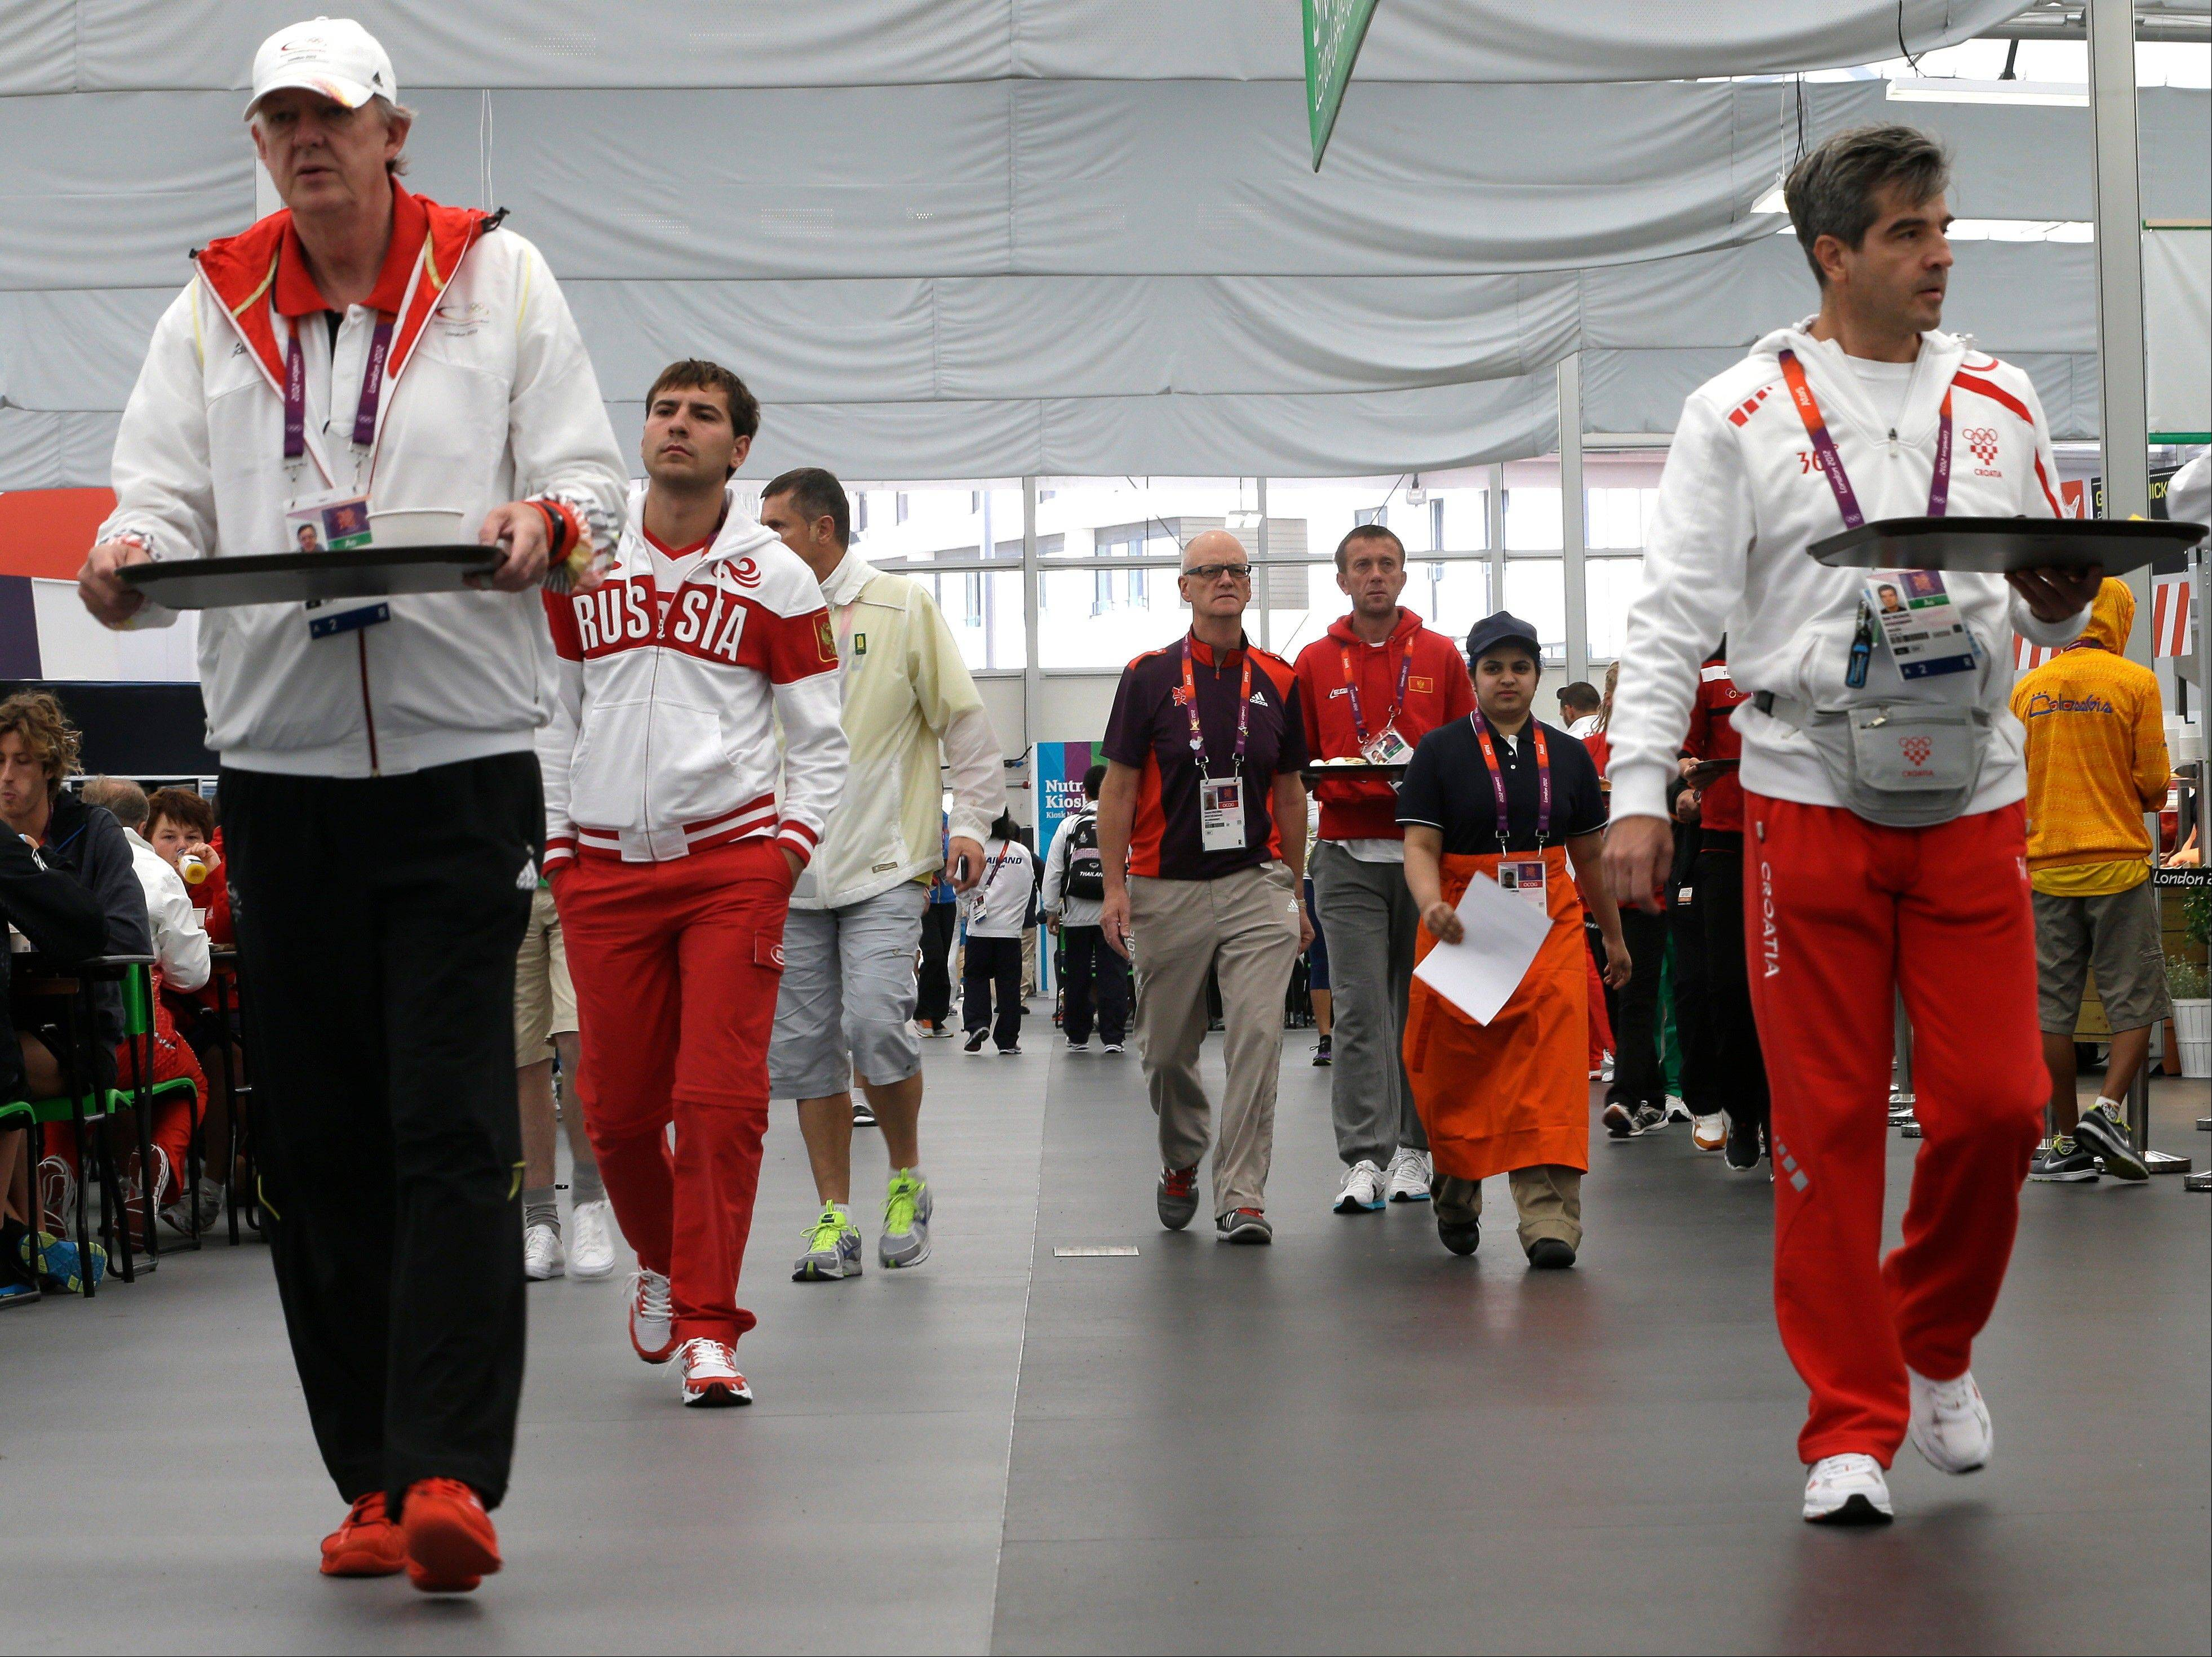 Olympic athletes and training personnel dine at the dining hall inside the Olympic Village in London. The athletes' dining room in the Olympic village is a food court like no other, offering the world's elite athletes healthy, hearty food and fuel, 24 hours a day -- and doing it the Slow Food way.